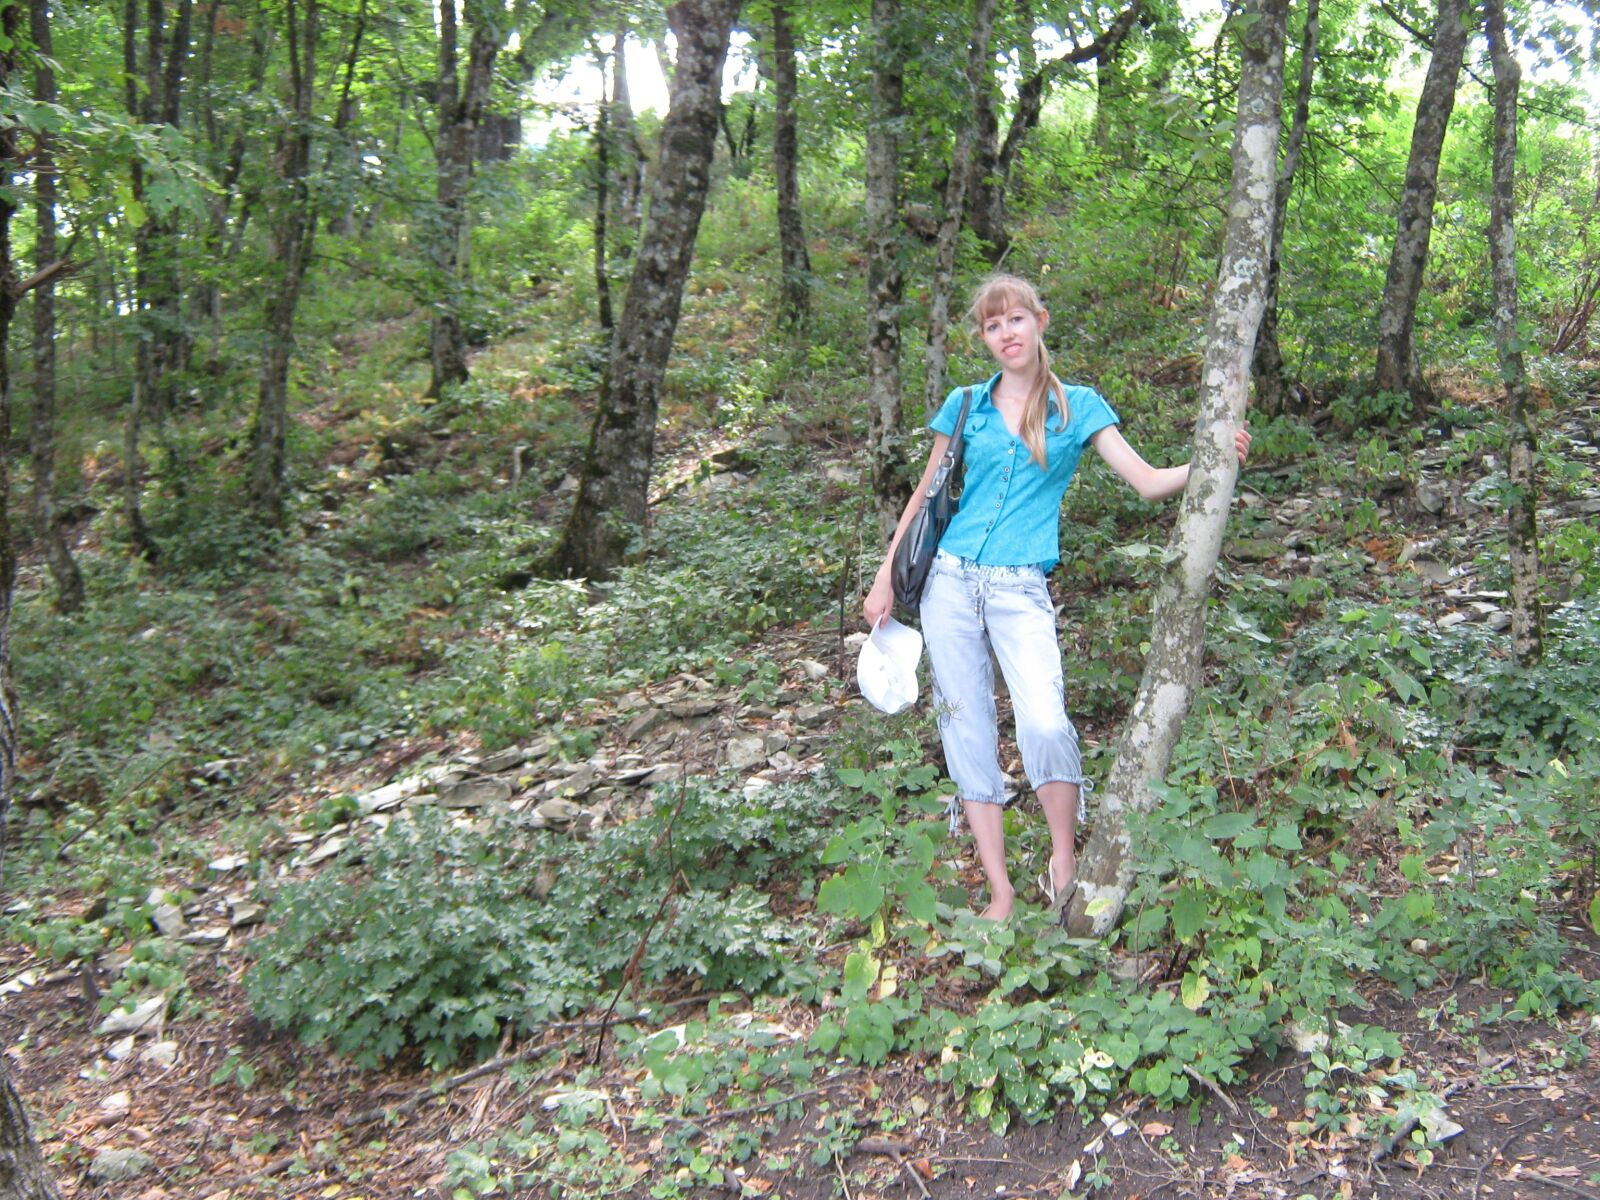 """Canon PowerShot A470 sample photo. """"Girl, forest, trees"""" photography"""